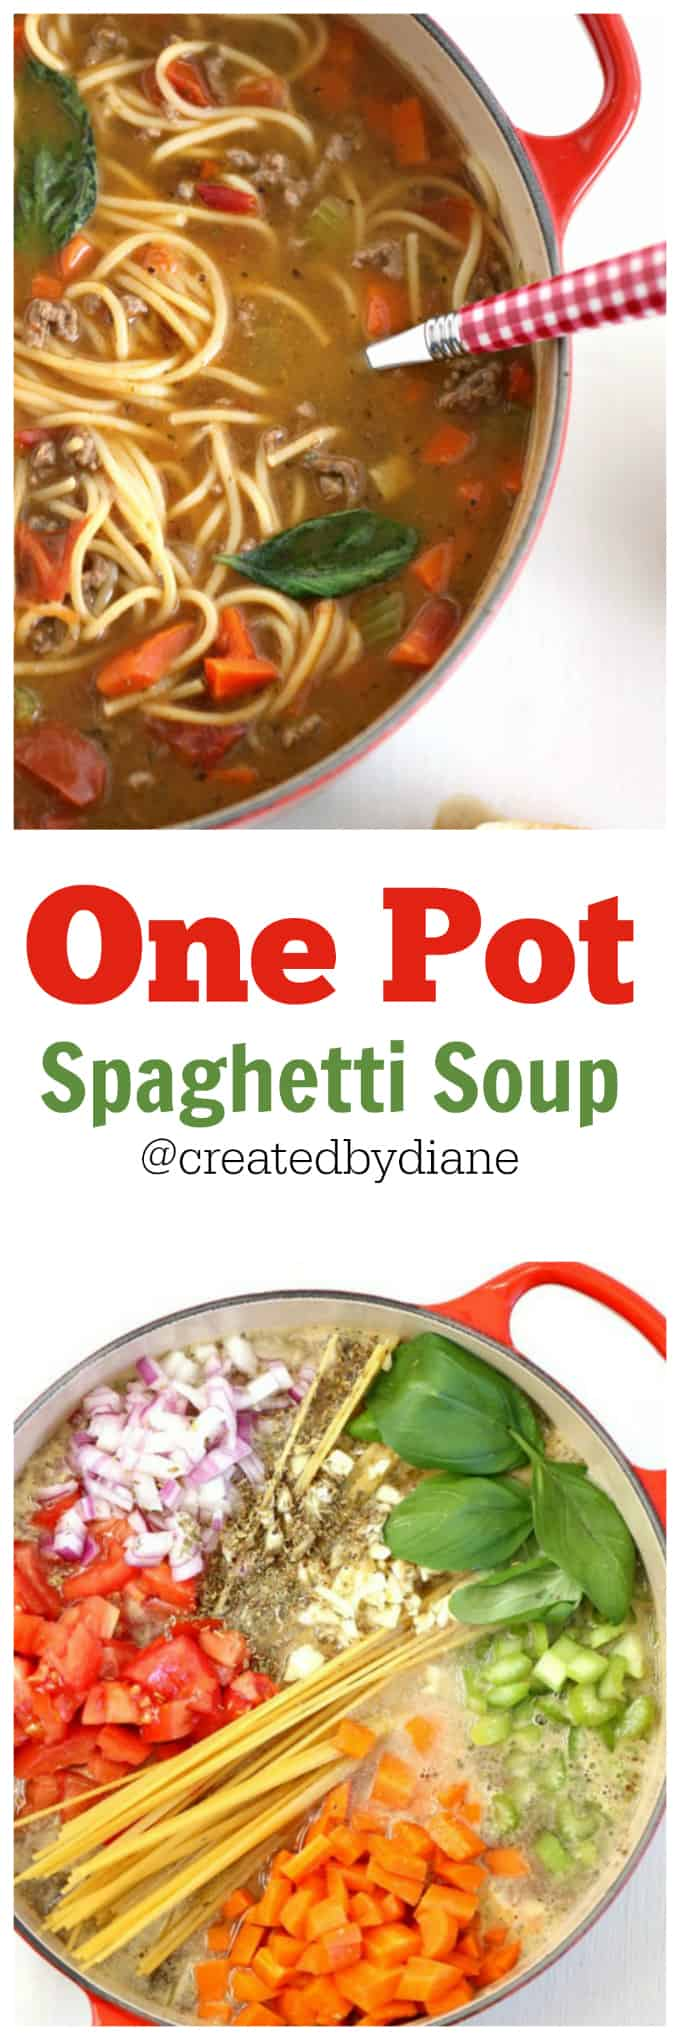 One Pot Spaghetti Soup #soup #30minutemeal #recipe @createdbydiane